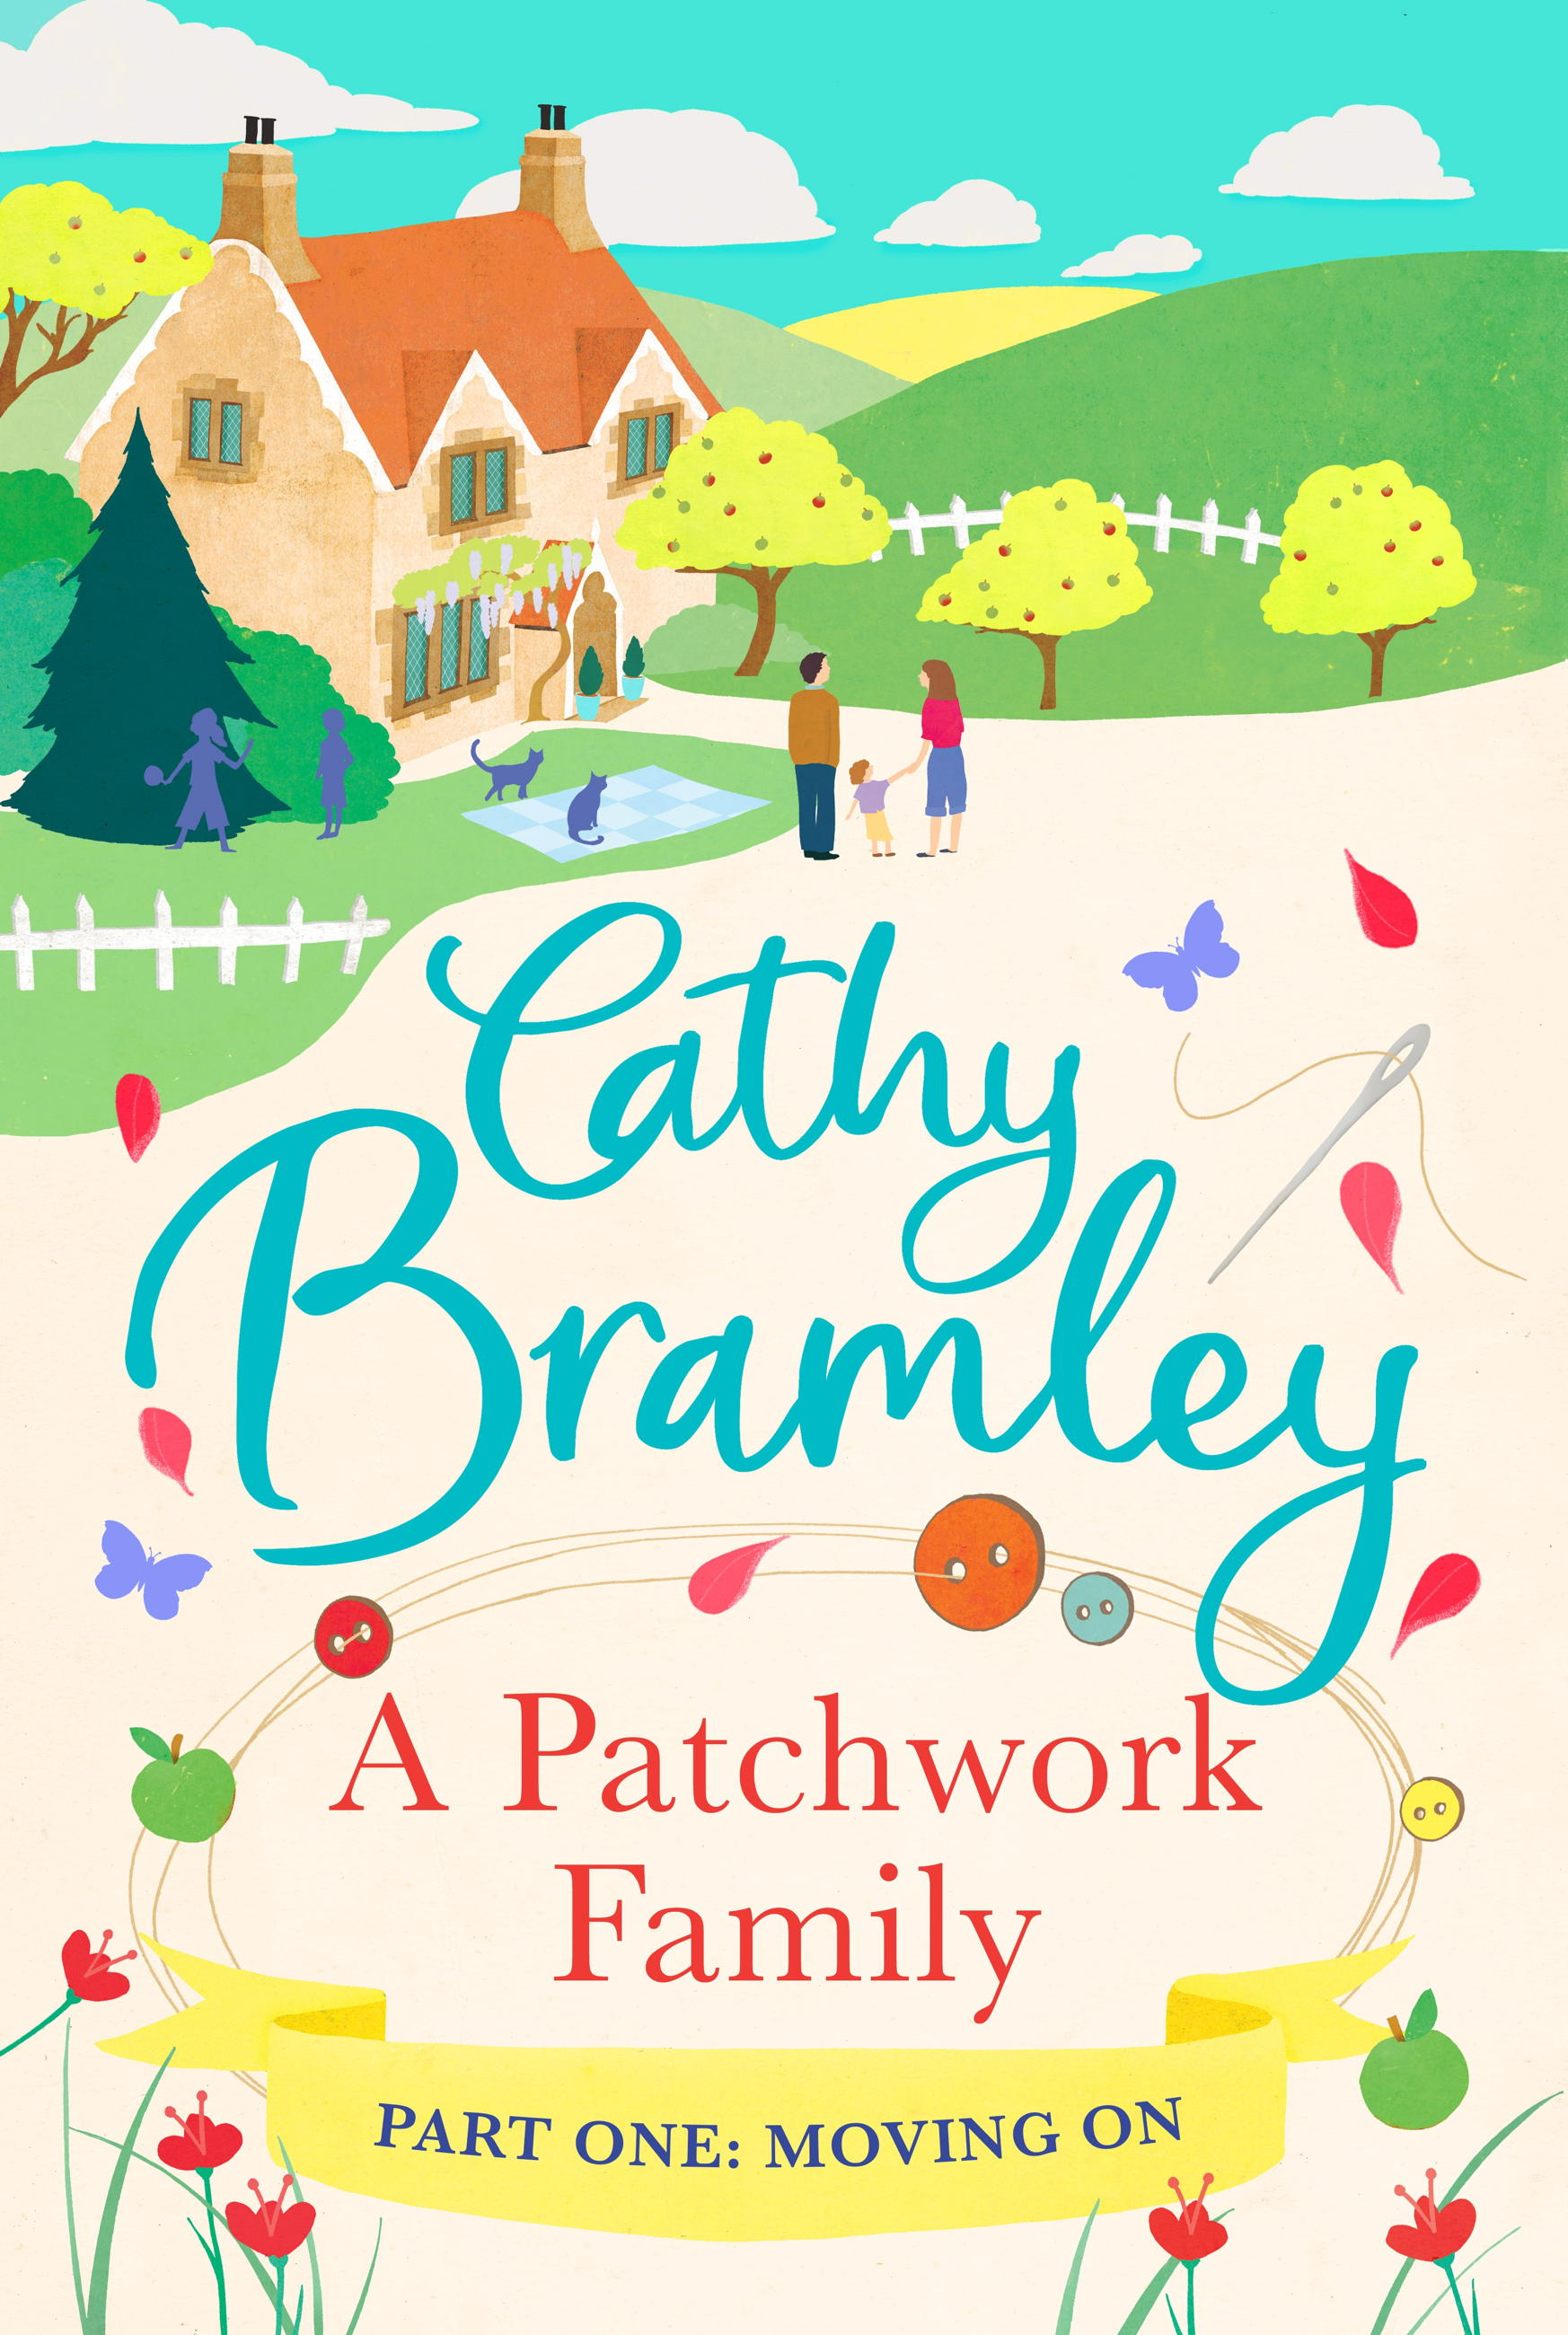 A Patchwork Family - Part One